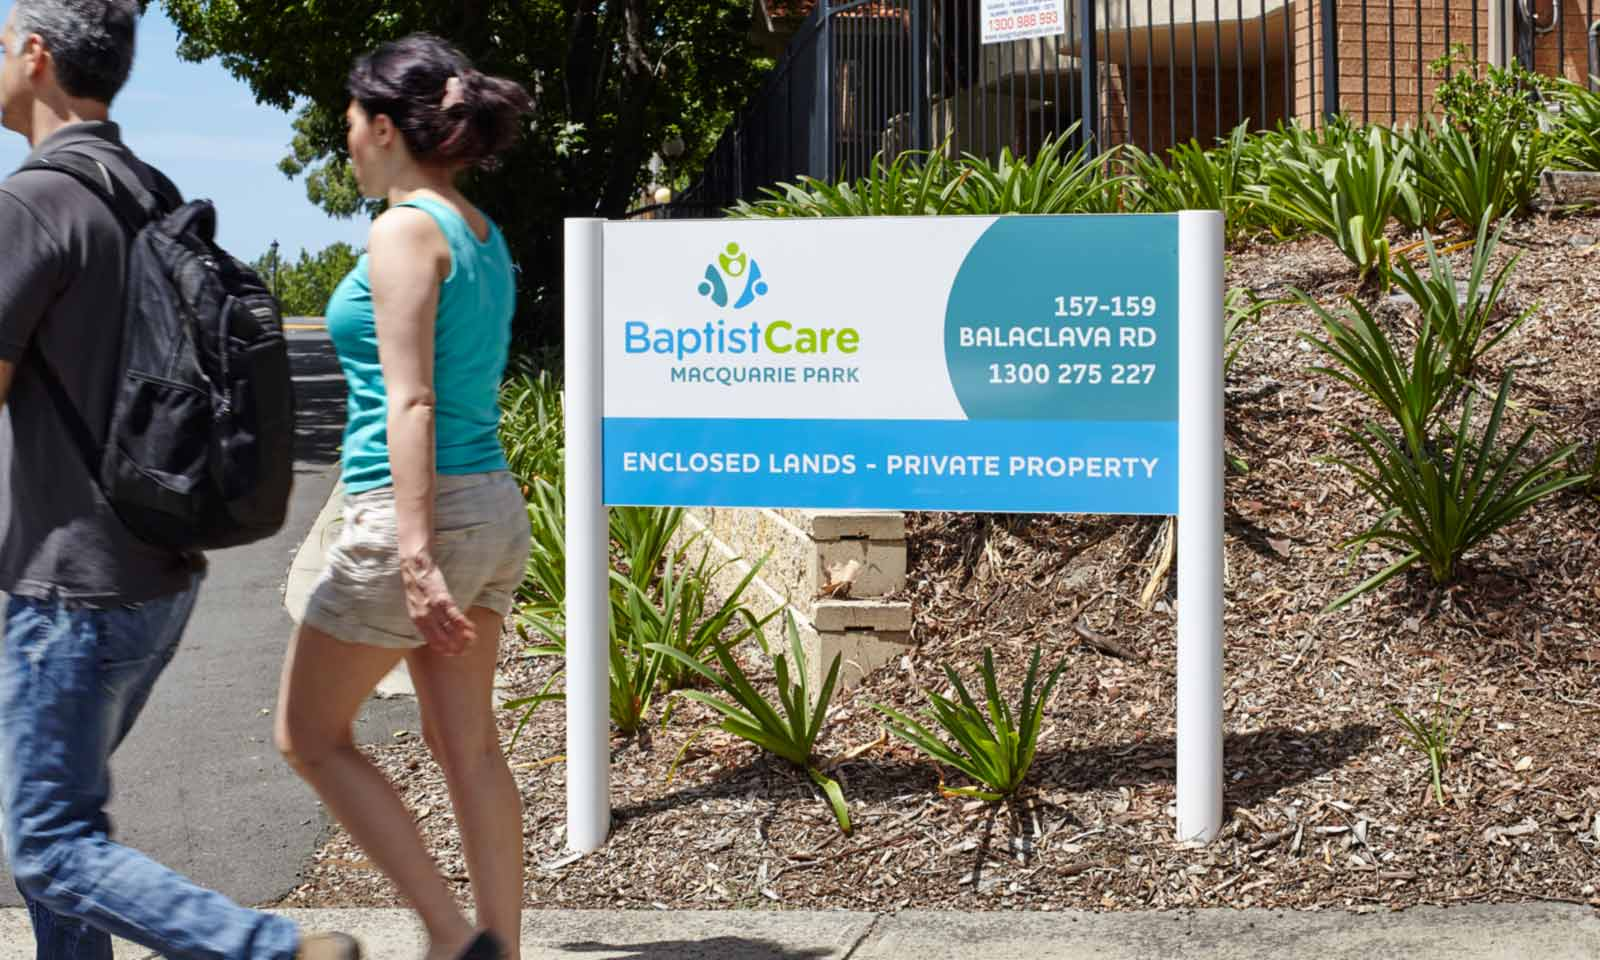 BaptistCare branded way-finding system.